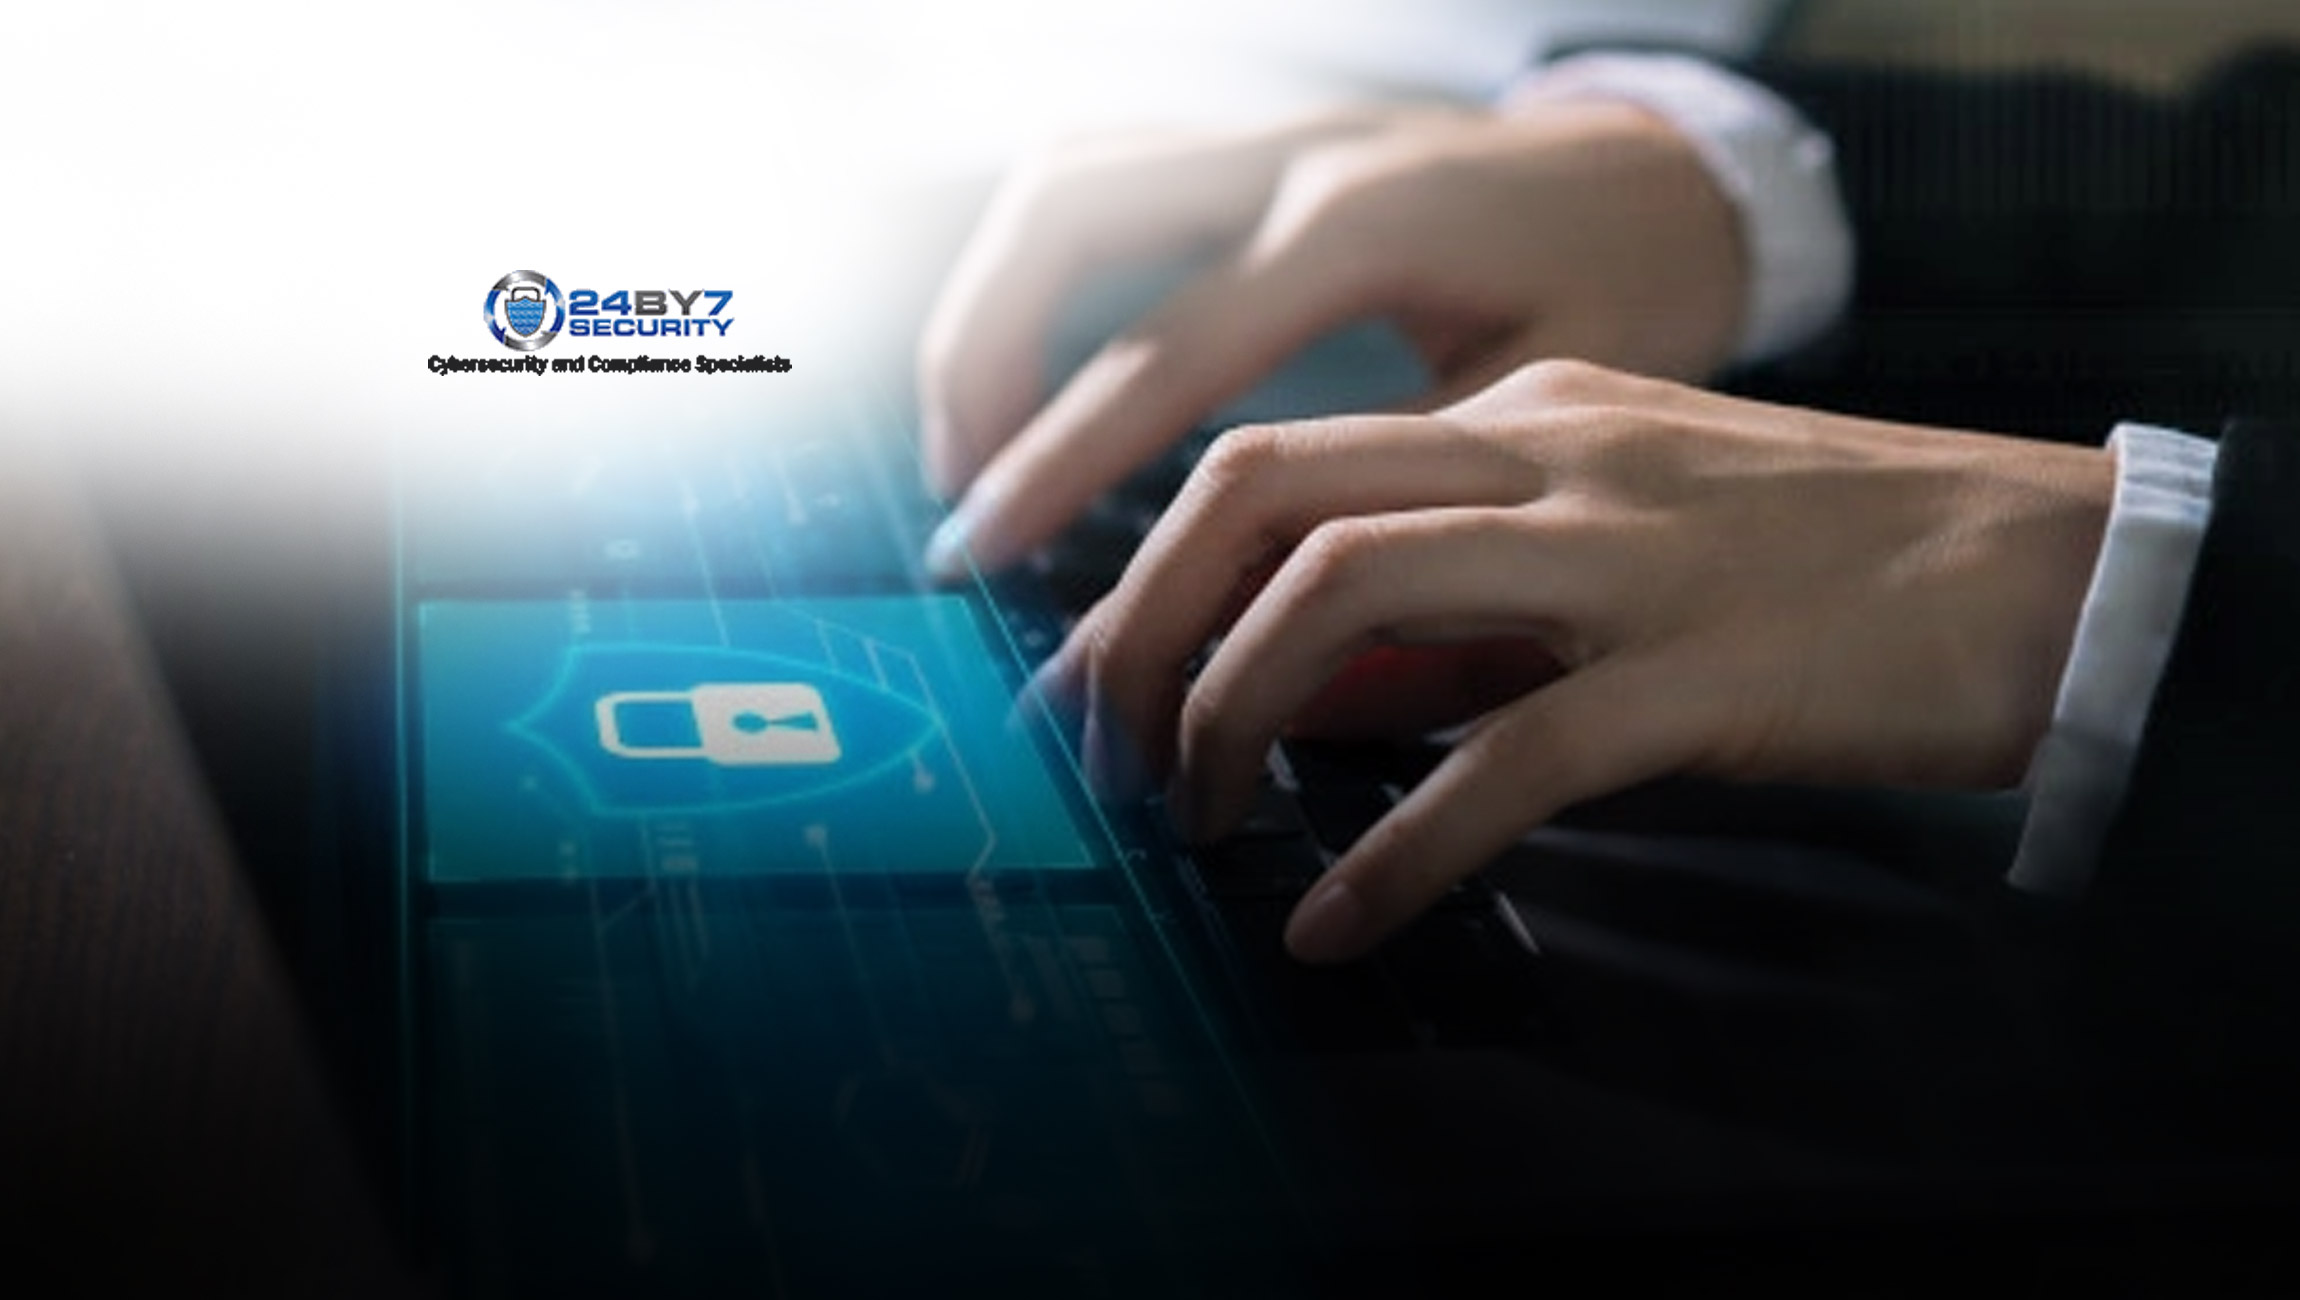 24By7Security-Earns-PCI-Qualified-Security-Assessor-(QSA)-Certification